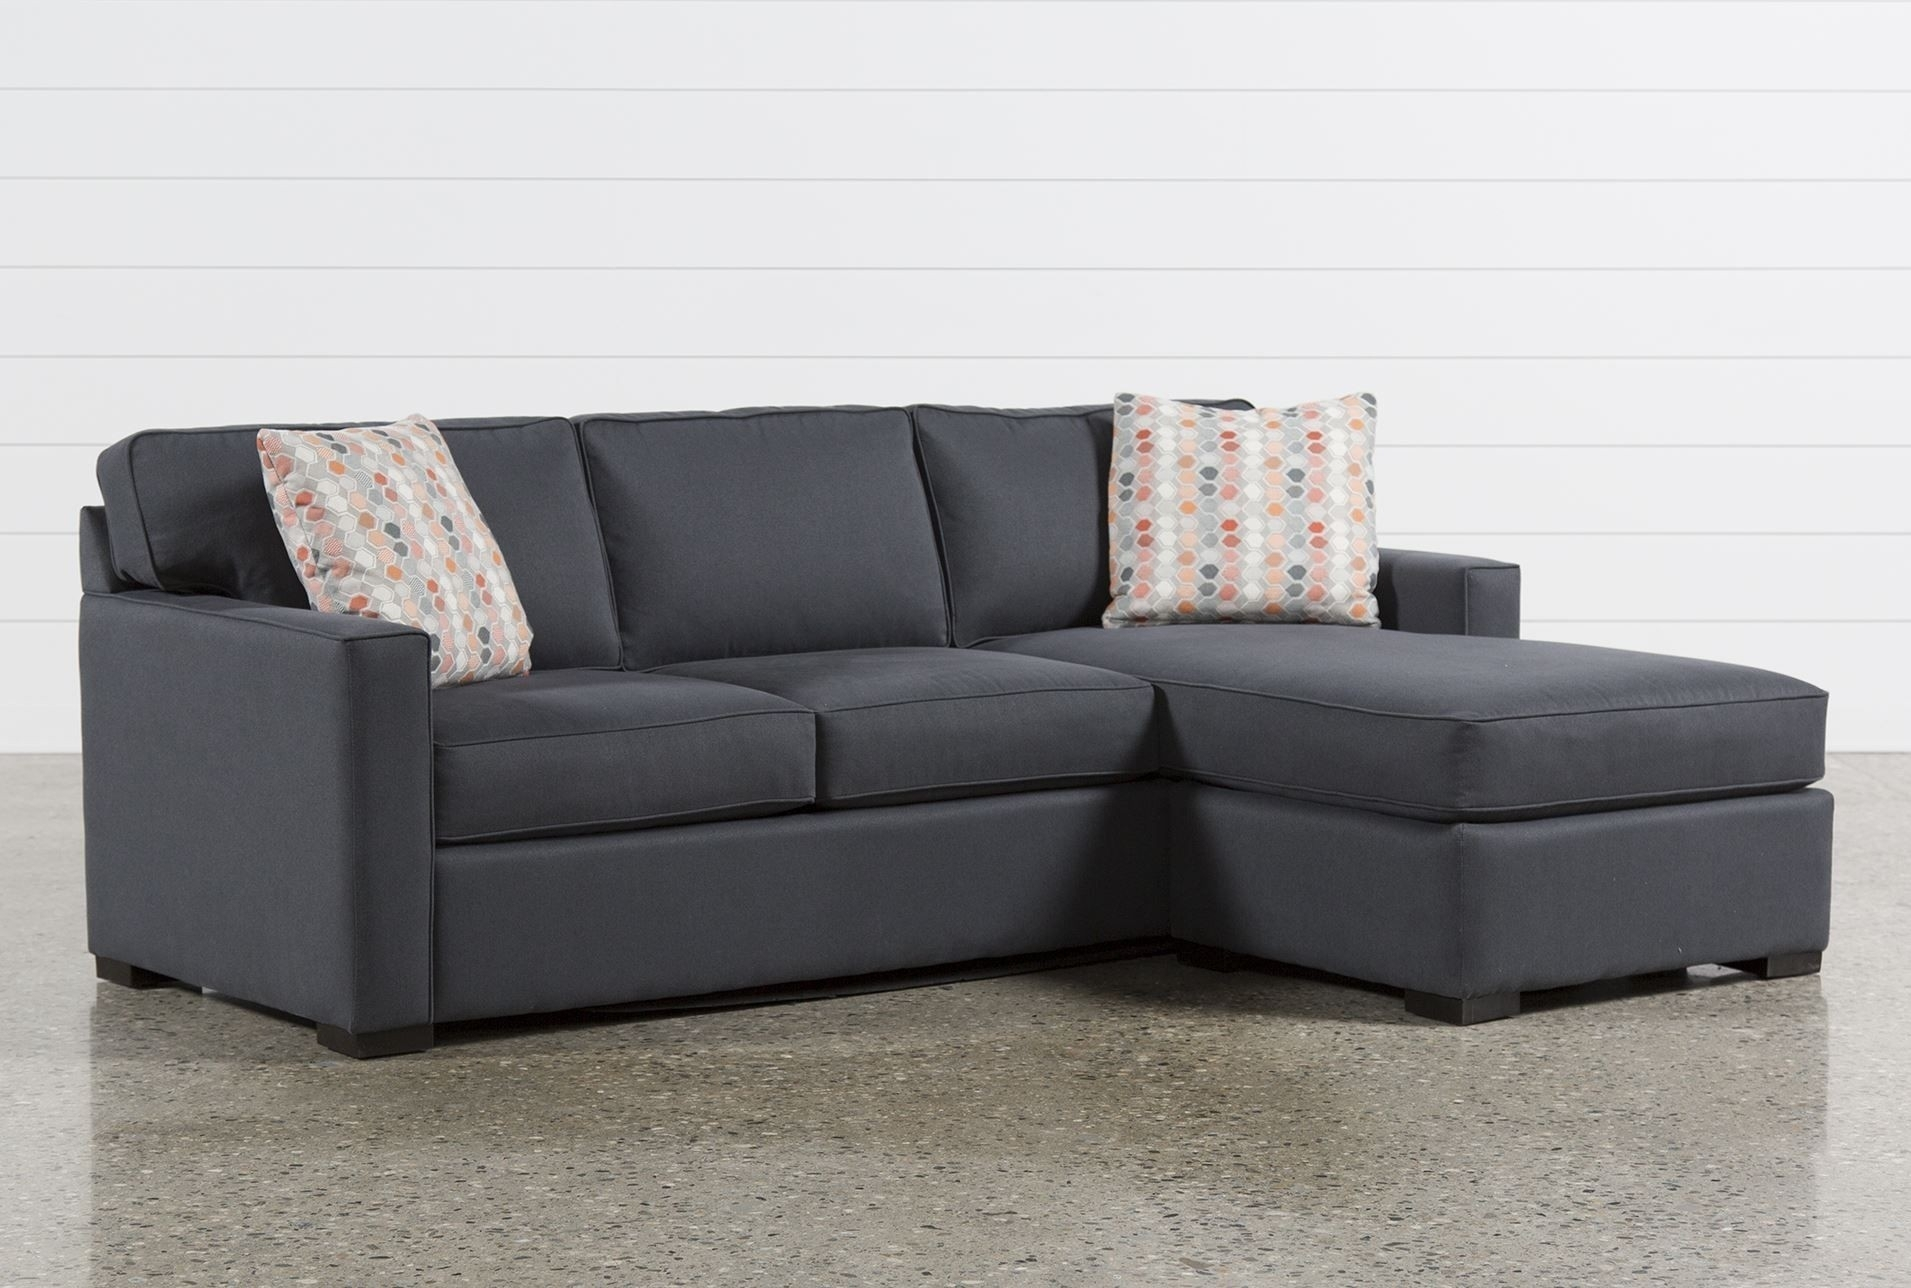 Living Spaces Sectional - Implantologiabogota.co in Kerri 2 Piece Sectionals With Laf Chaise (Image 20 of 30)